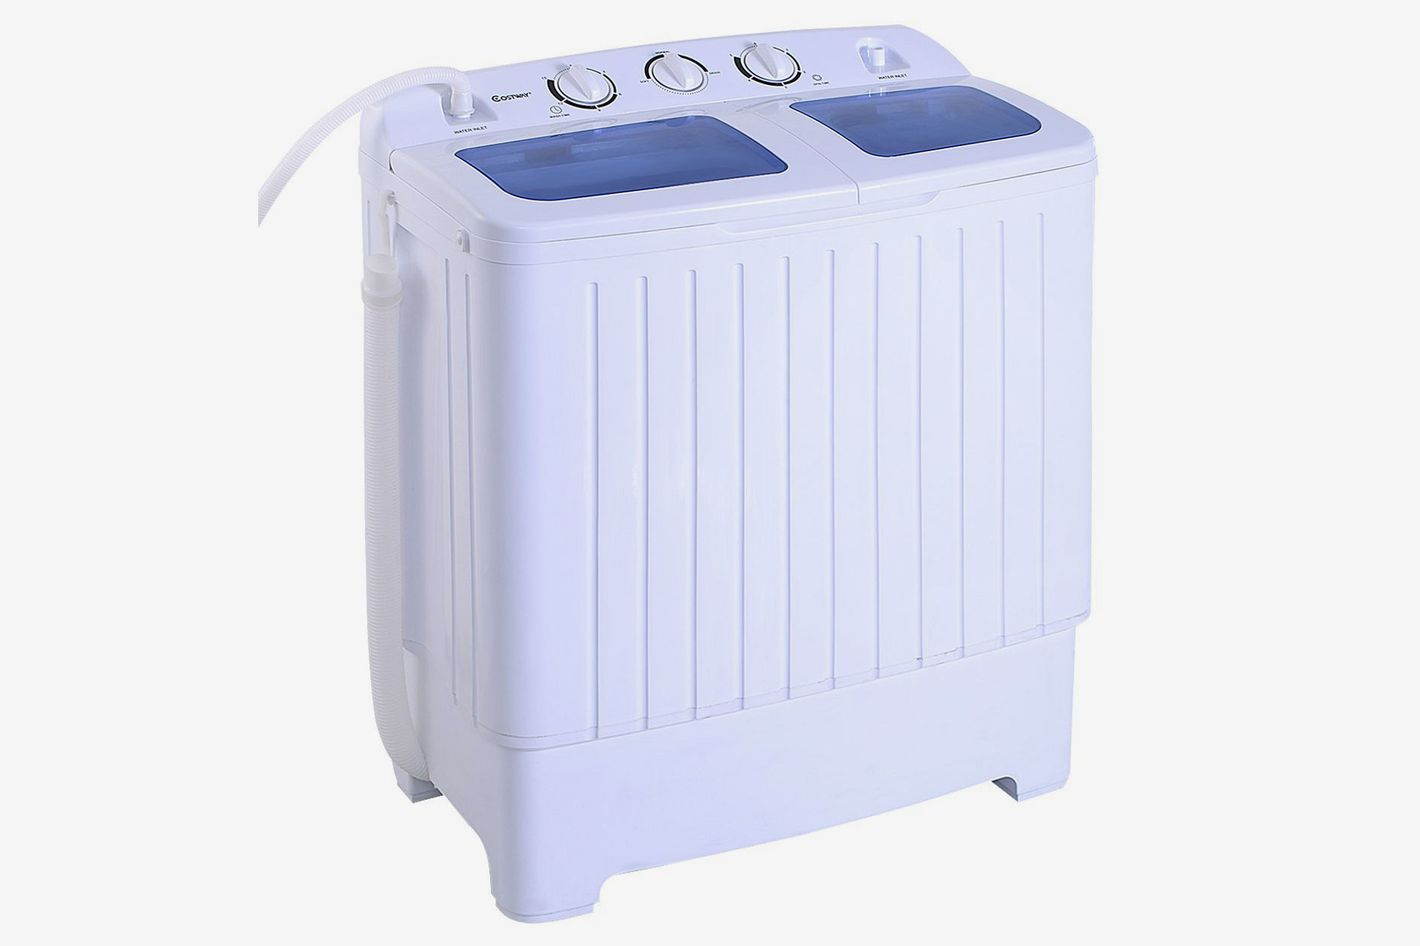 Portable Washer And Dryer For Apartments Reviews Latest